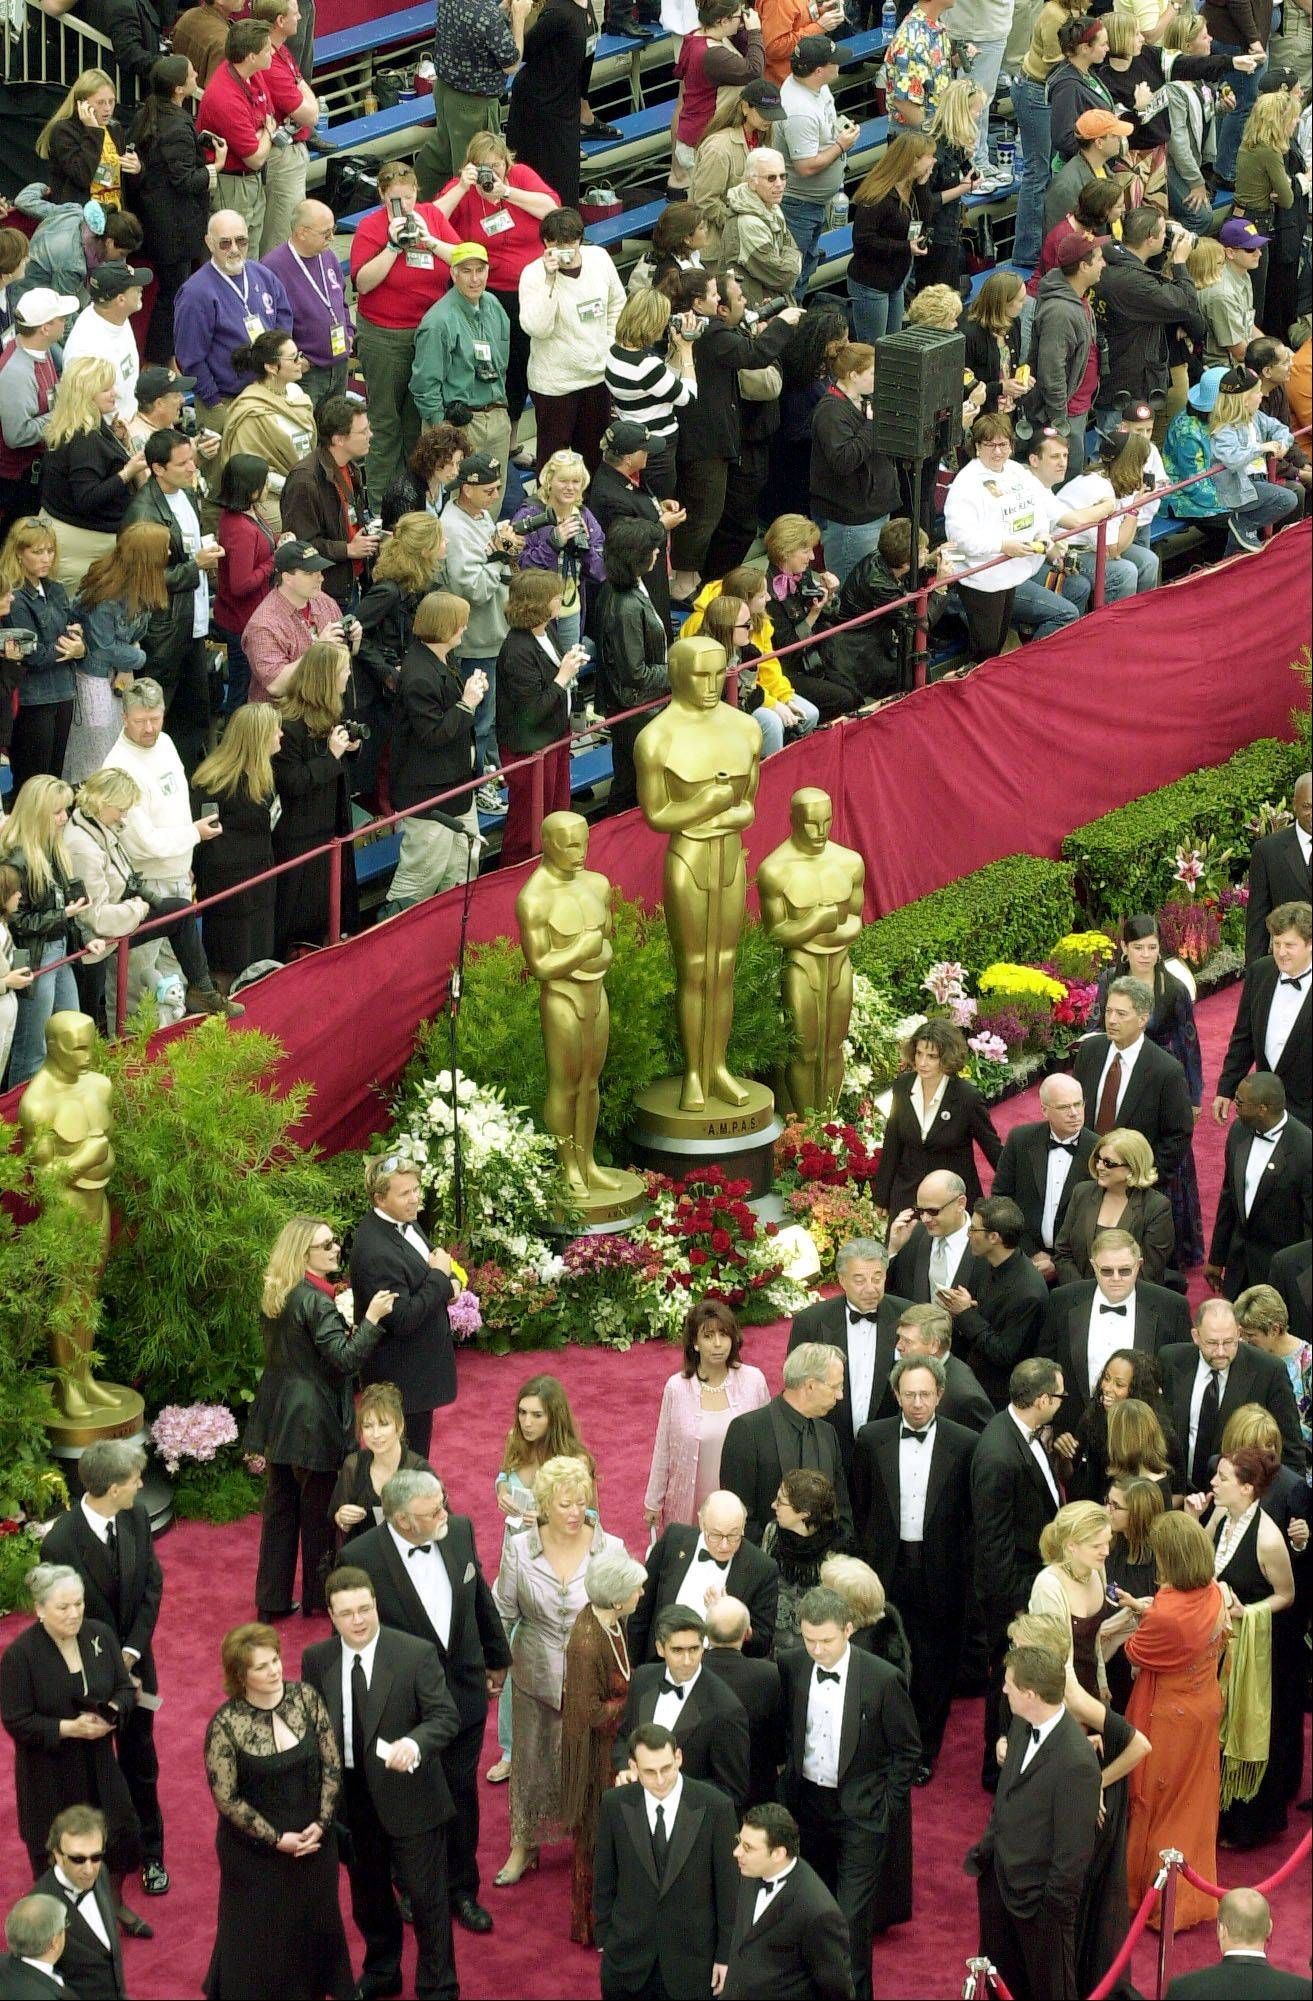 Celebrities will stroll down the red carpet past fans, en route to the Academy Awards show.